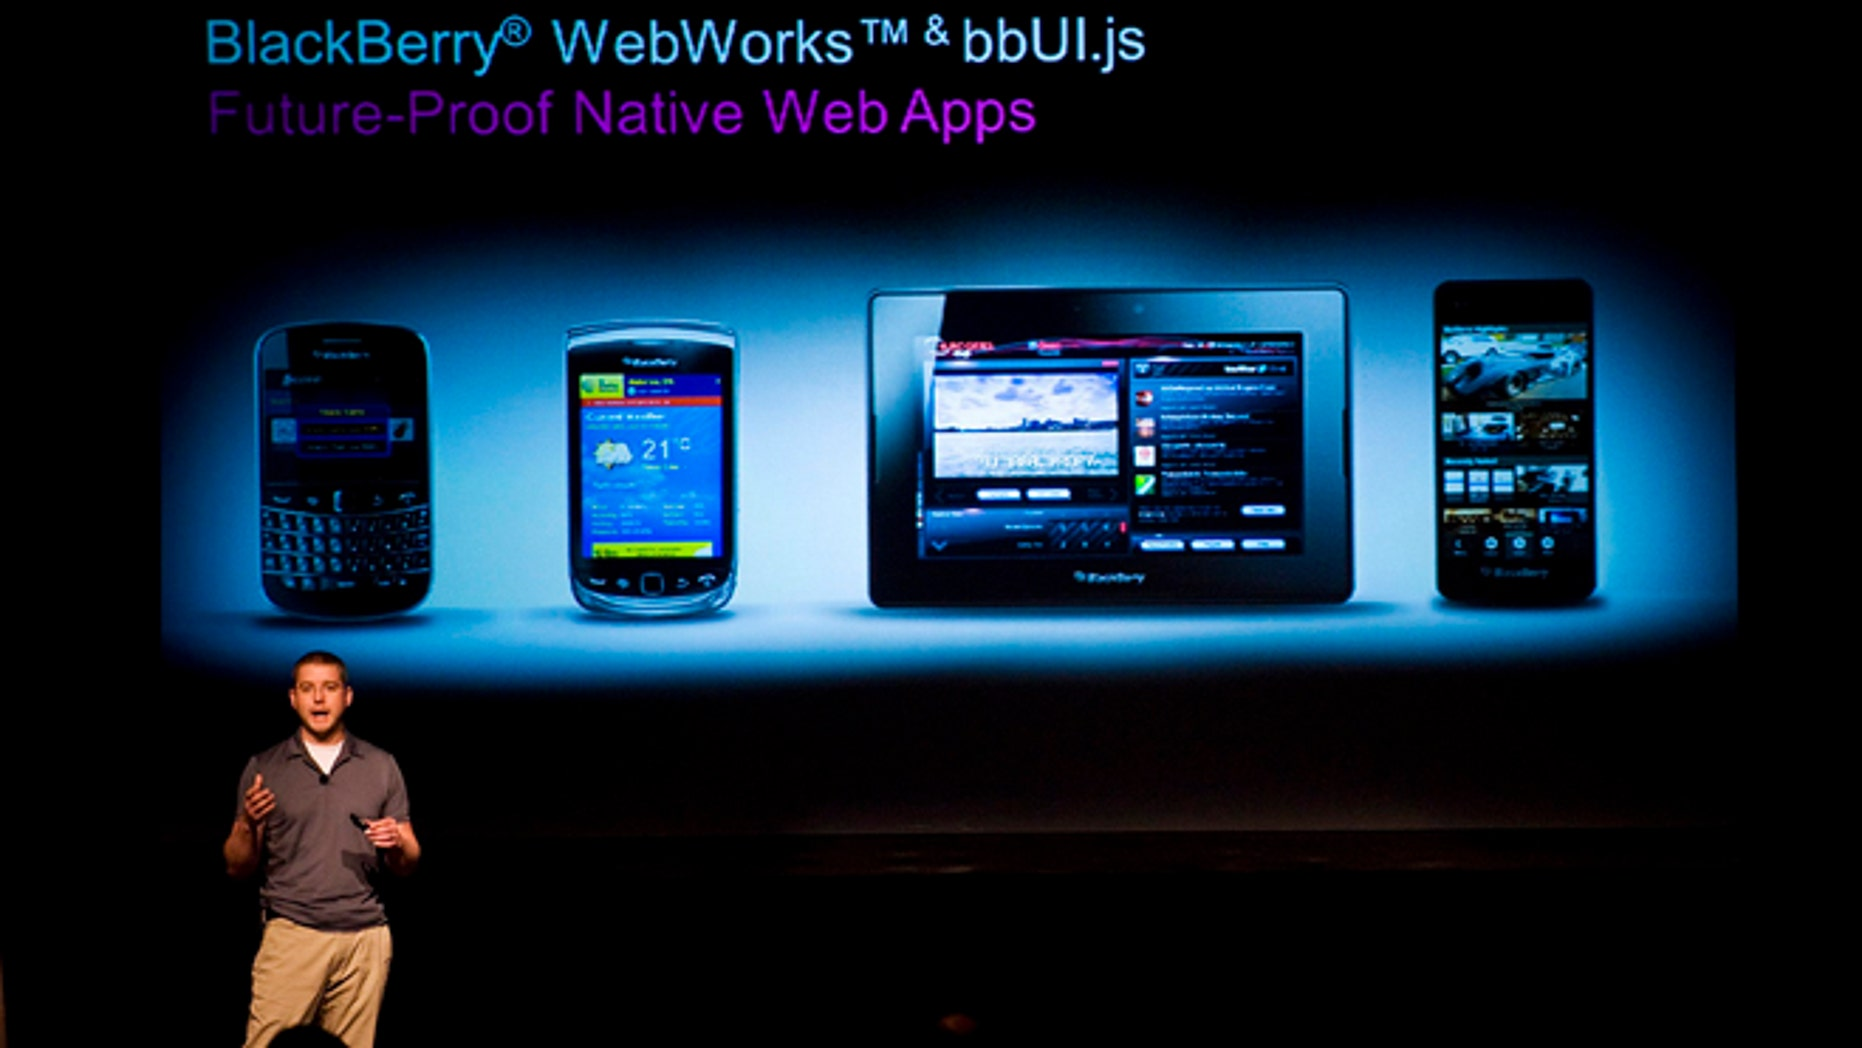 June 21, 2012: Tim Neil, Research In Motion Ltd.'s Canadian Operating Director of Operations, Platforms and Tools, speaks about the Blackberry 10 architecture during the RIM Blackberry 10 Jam World Tour in Toronto.